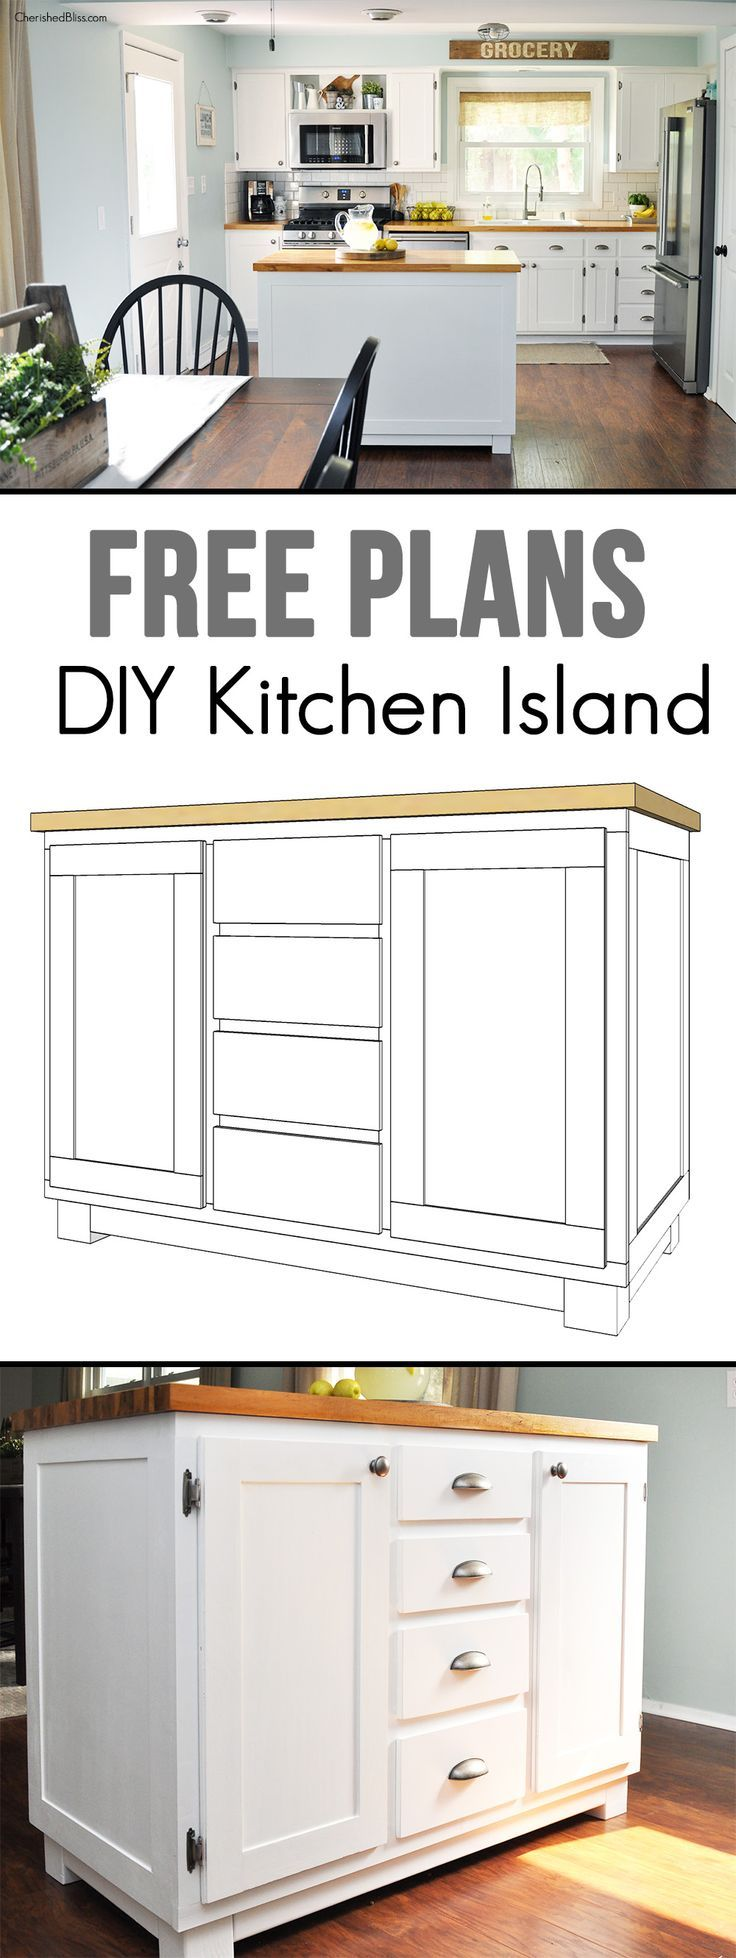 Kitchen Plans With Island best 25+ build kitchen island ideas on pinterest | build kitchen